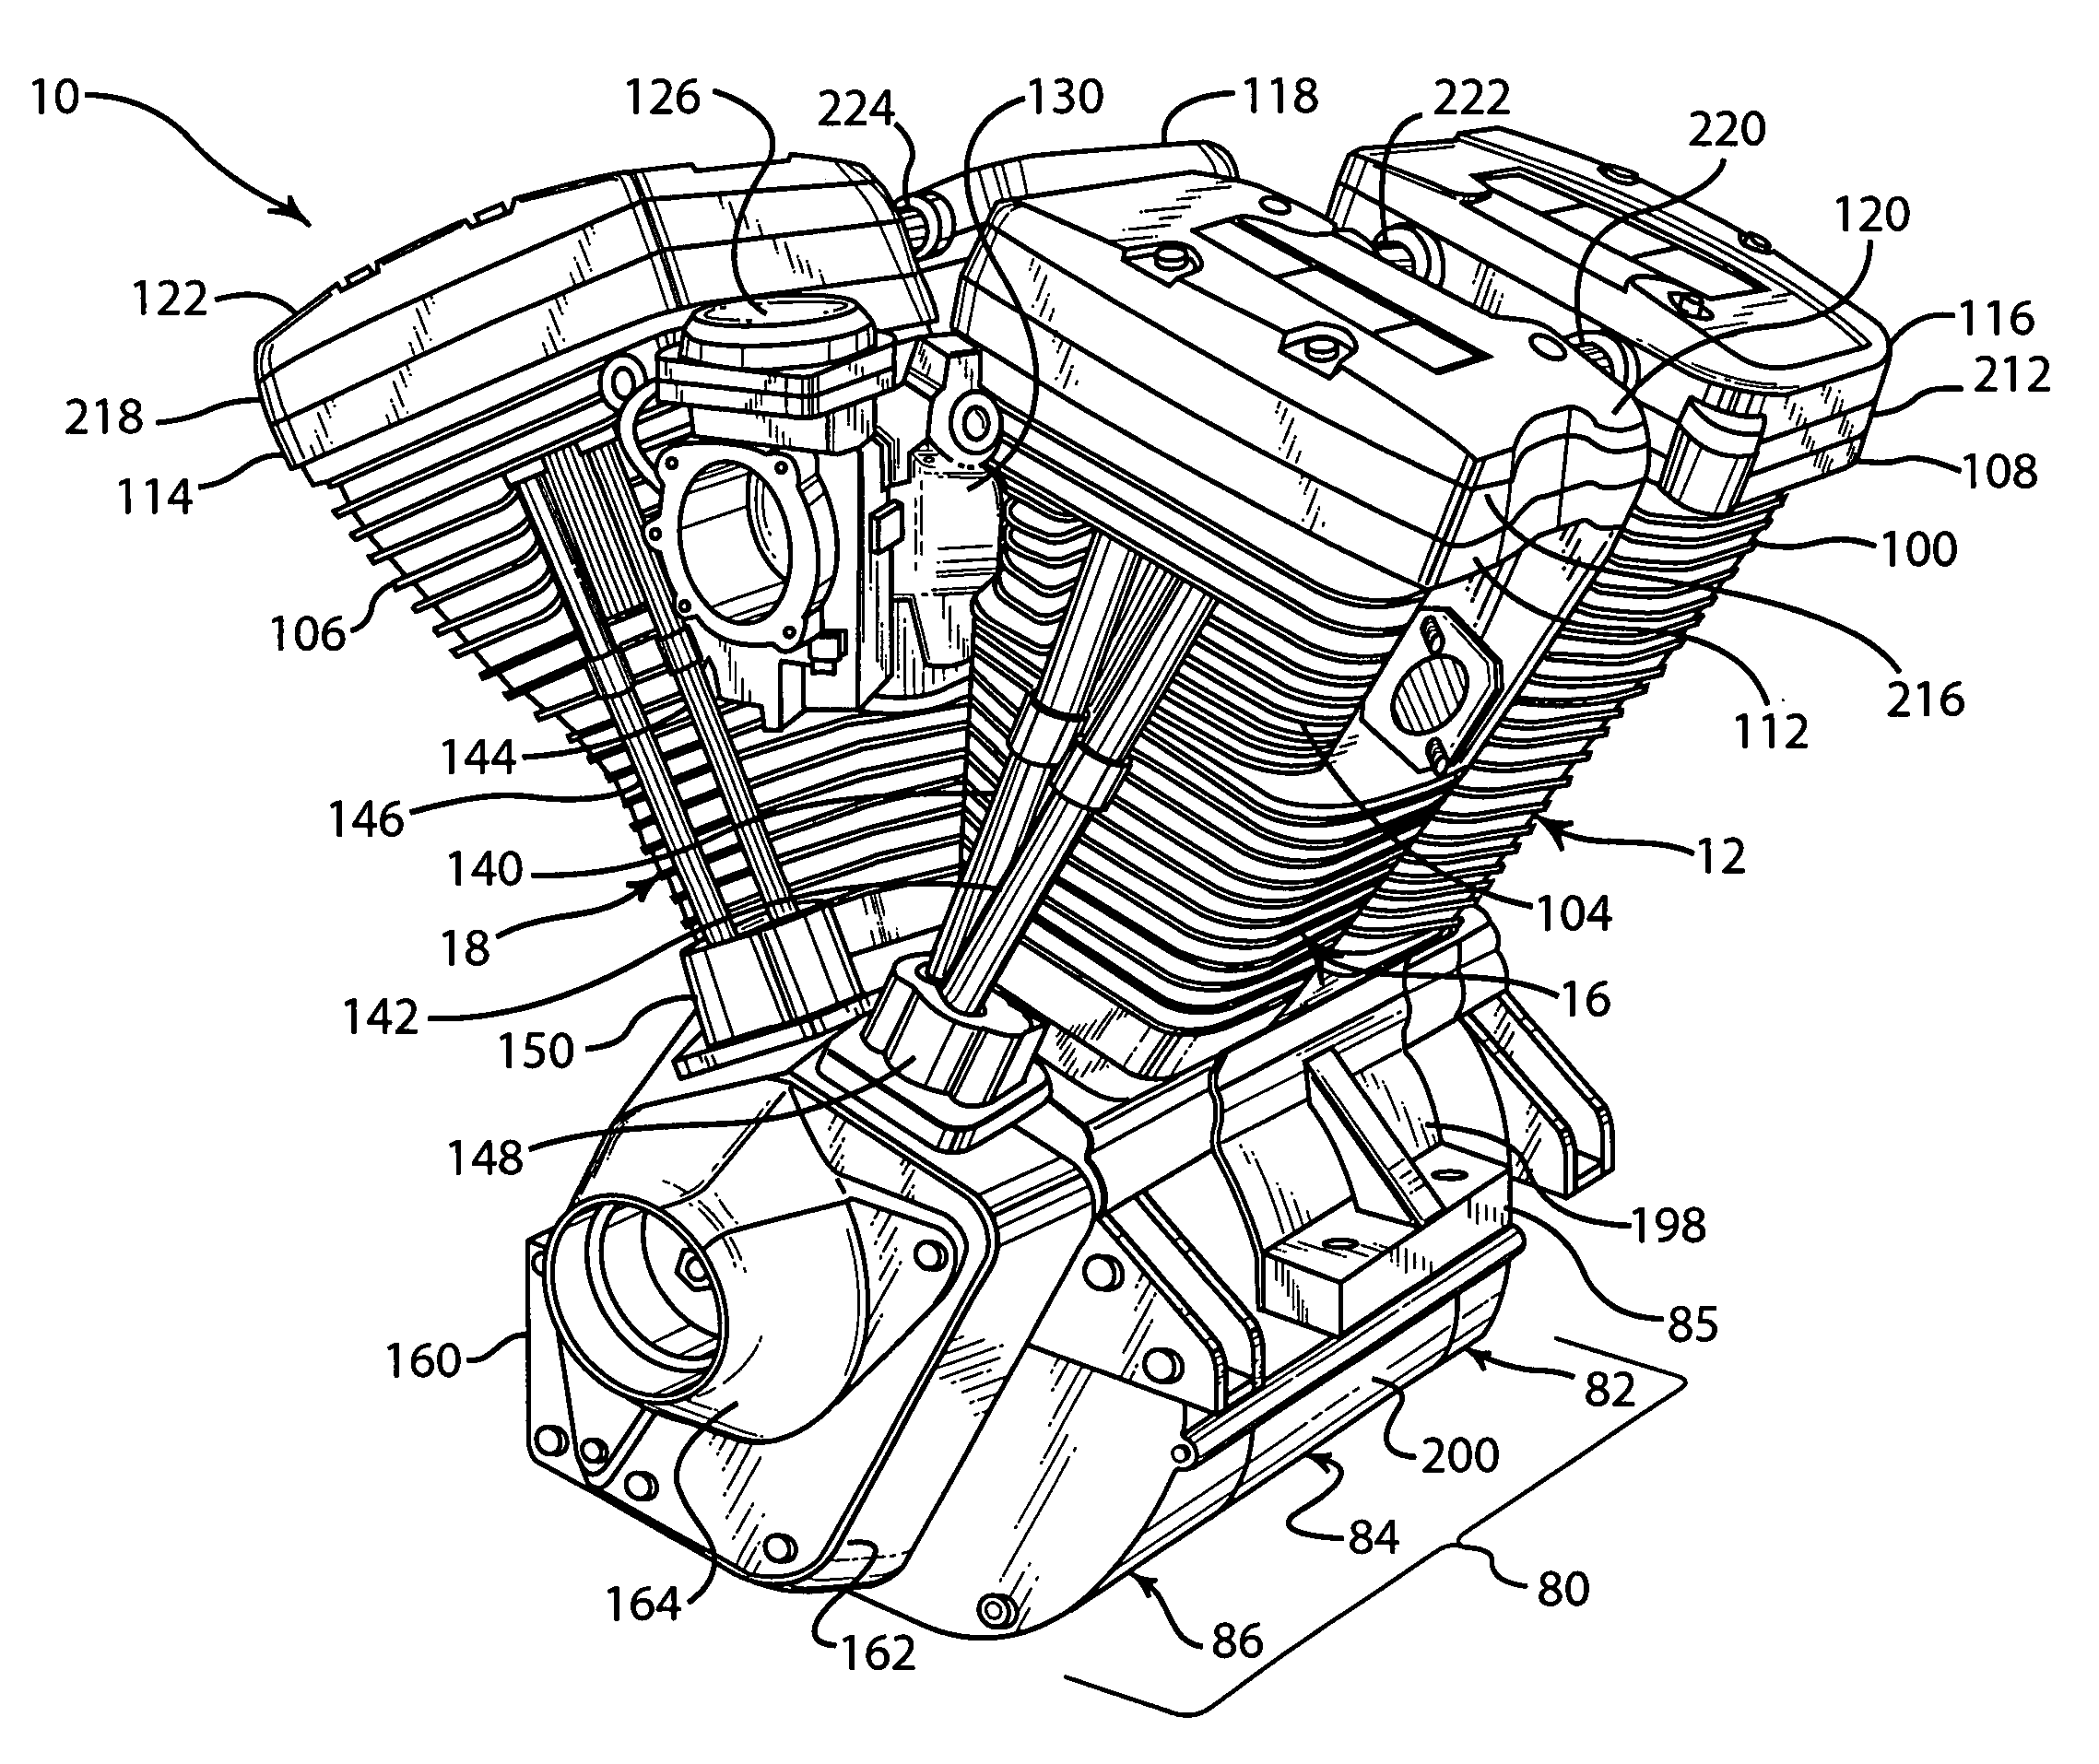 harley davidson sportster engine diagram patent us7134407 - v-quad engine and method of ... harley davidson motorcycle engine diagram